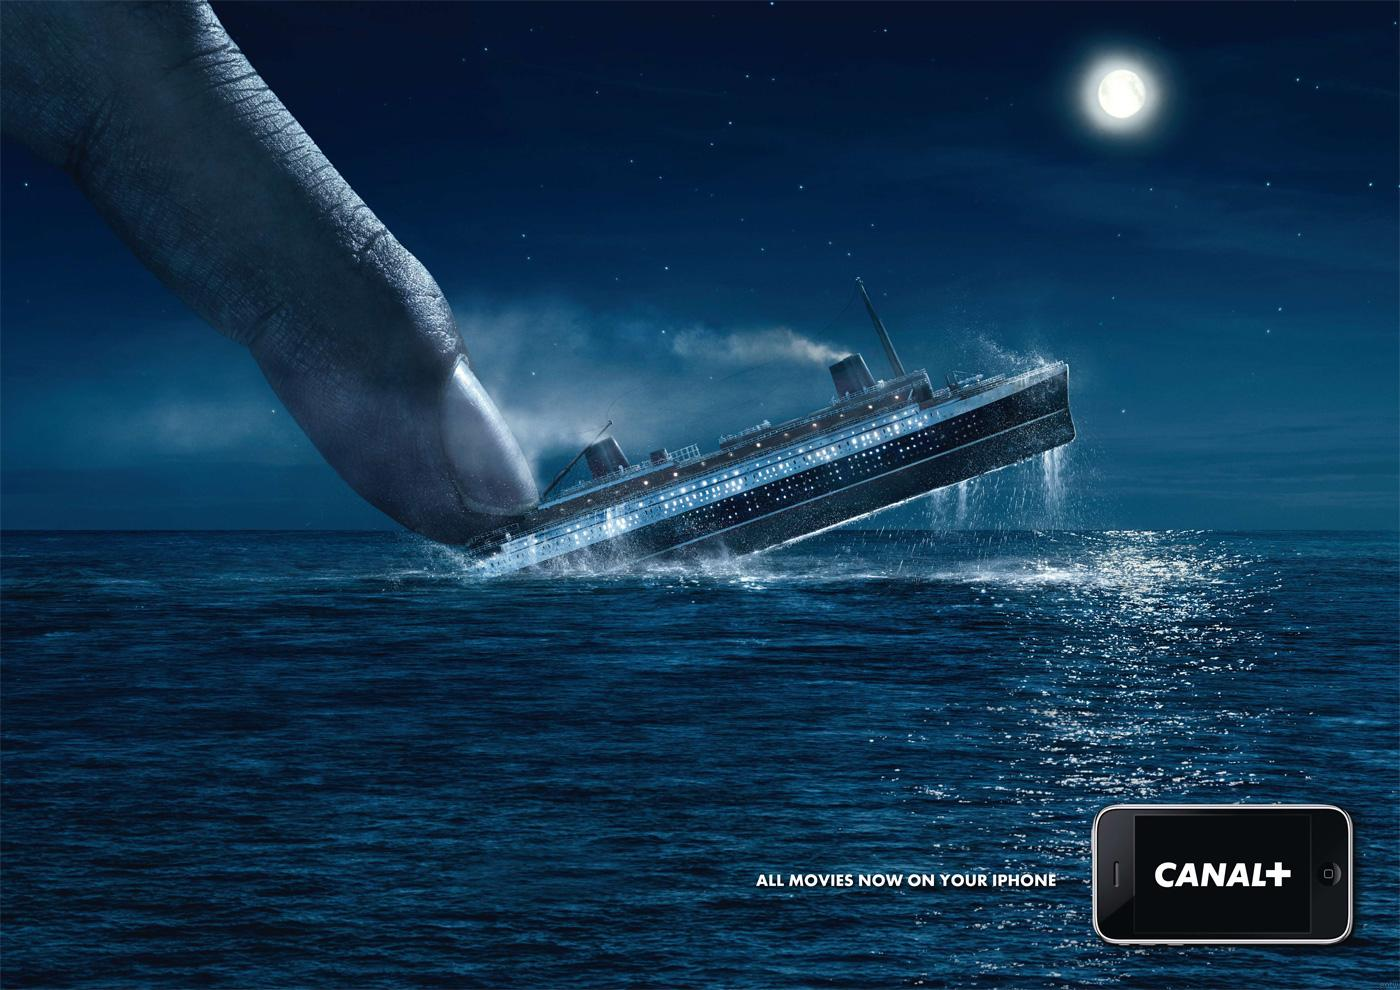 Canal+ Print Ad -  iPhone, Titanic